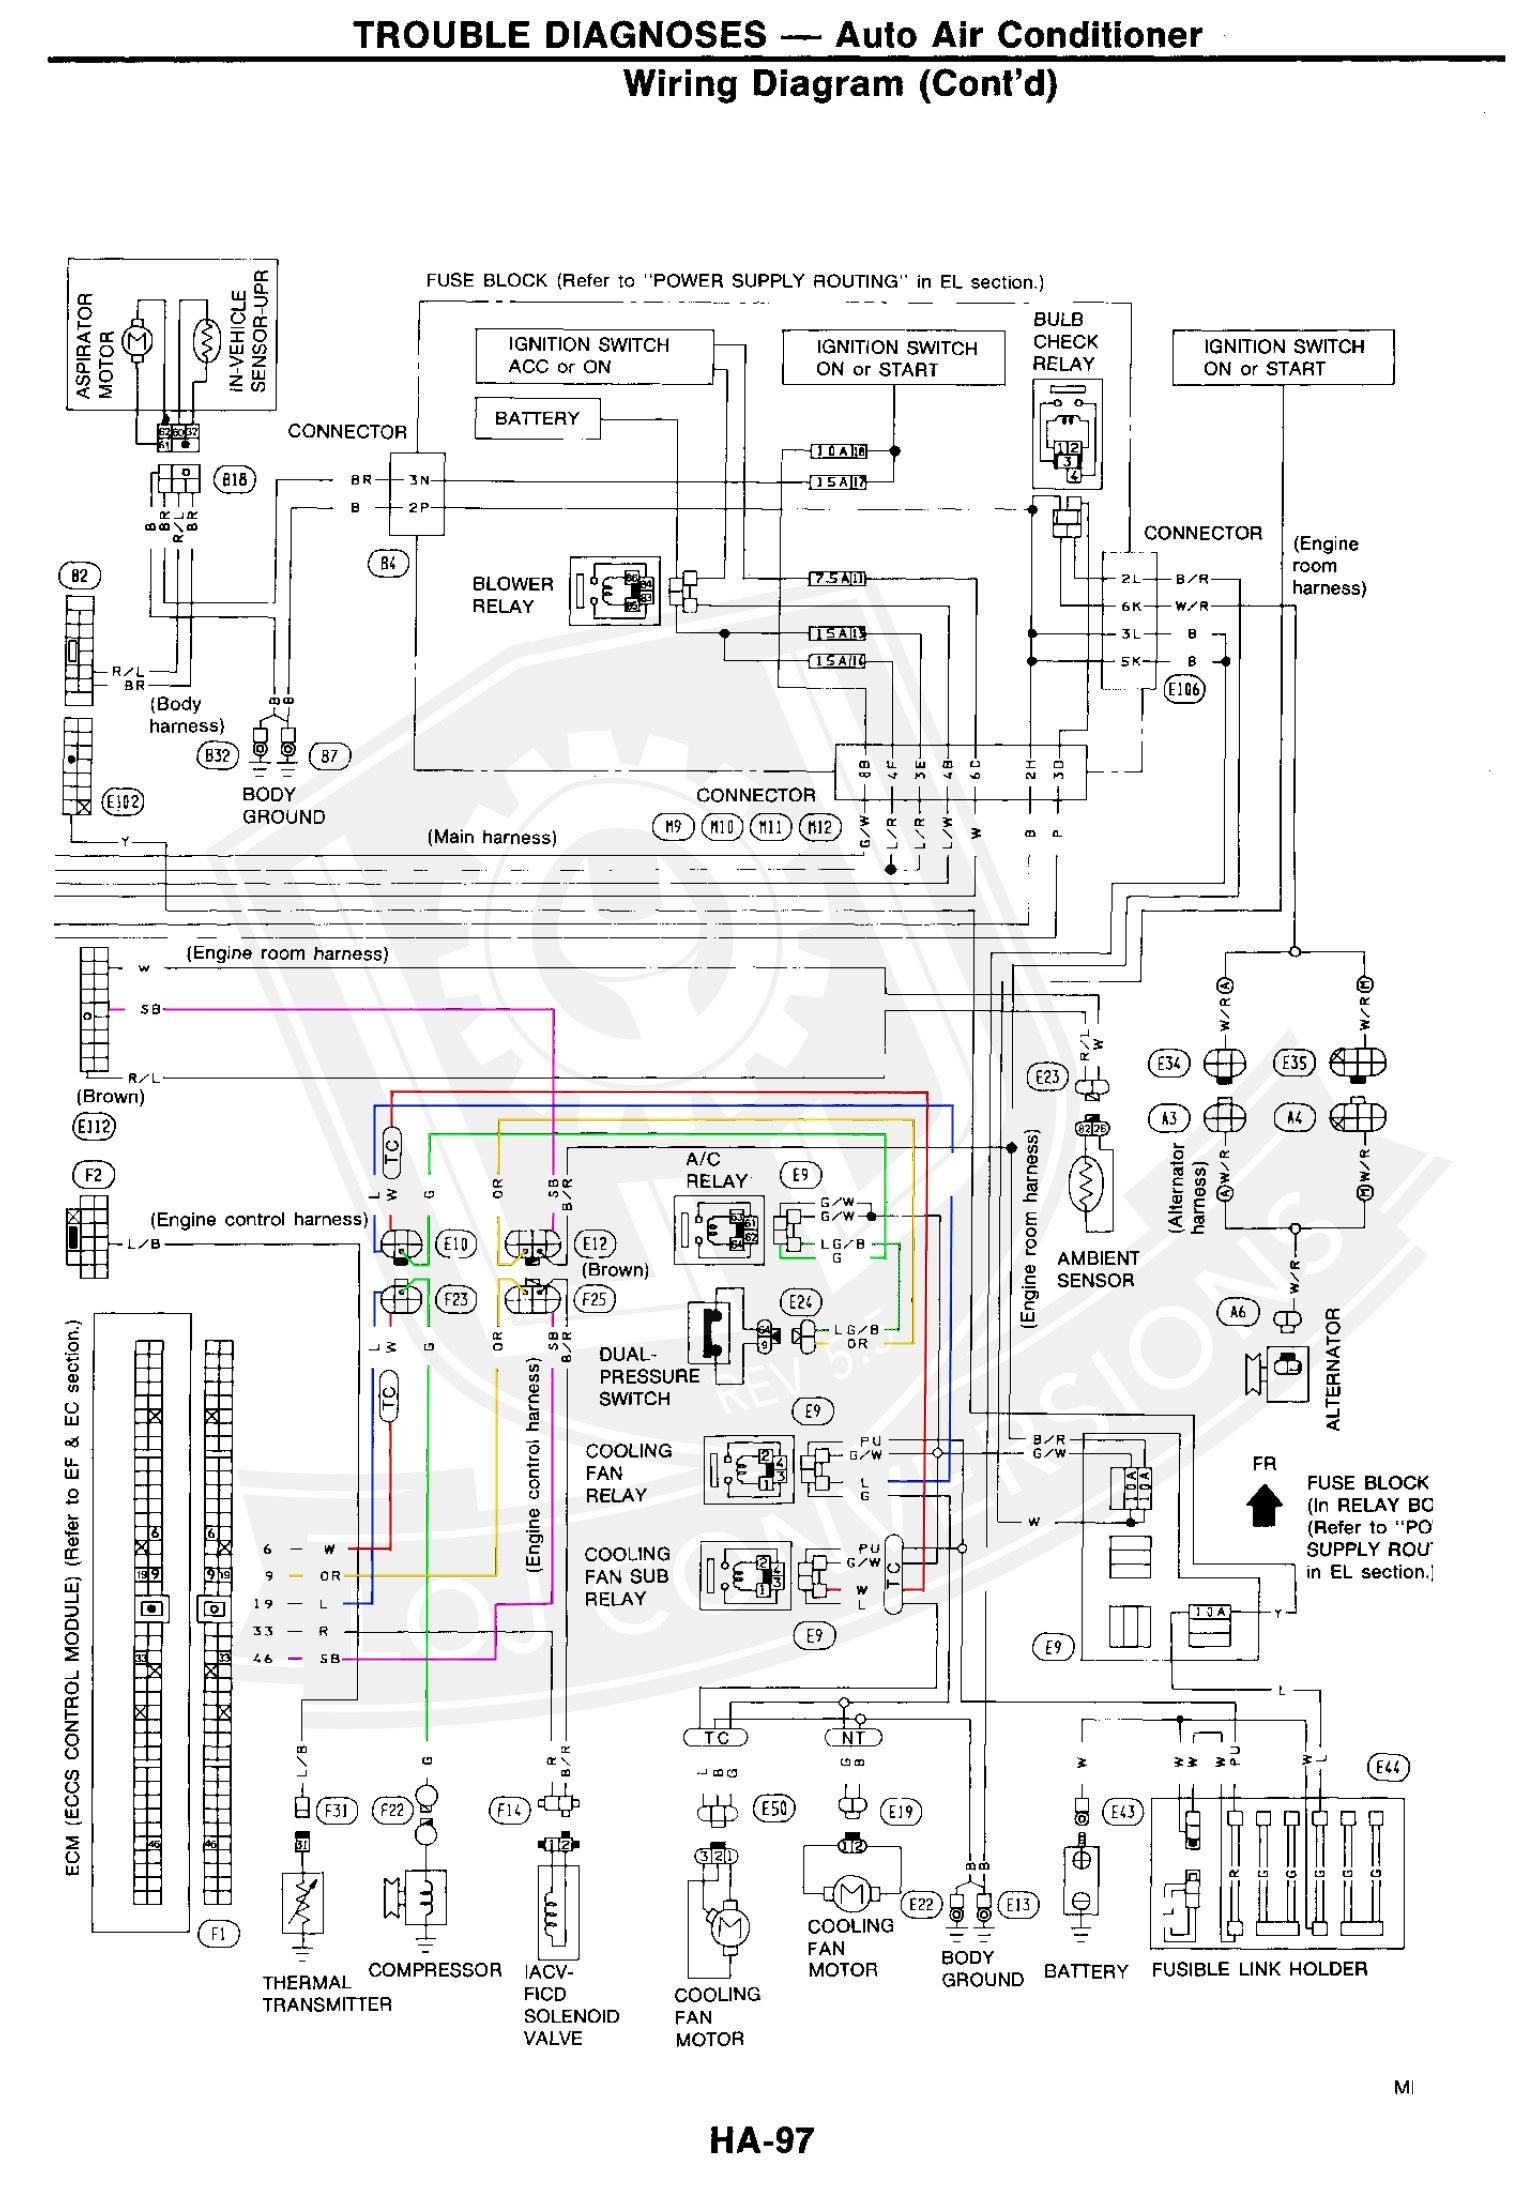 Nissan Zx Engine Diagram Z Alternator Wiring Diagram Fresh Zx Engine Wiring Diagram Of Nissan Zx Engine Diagram